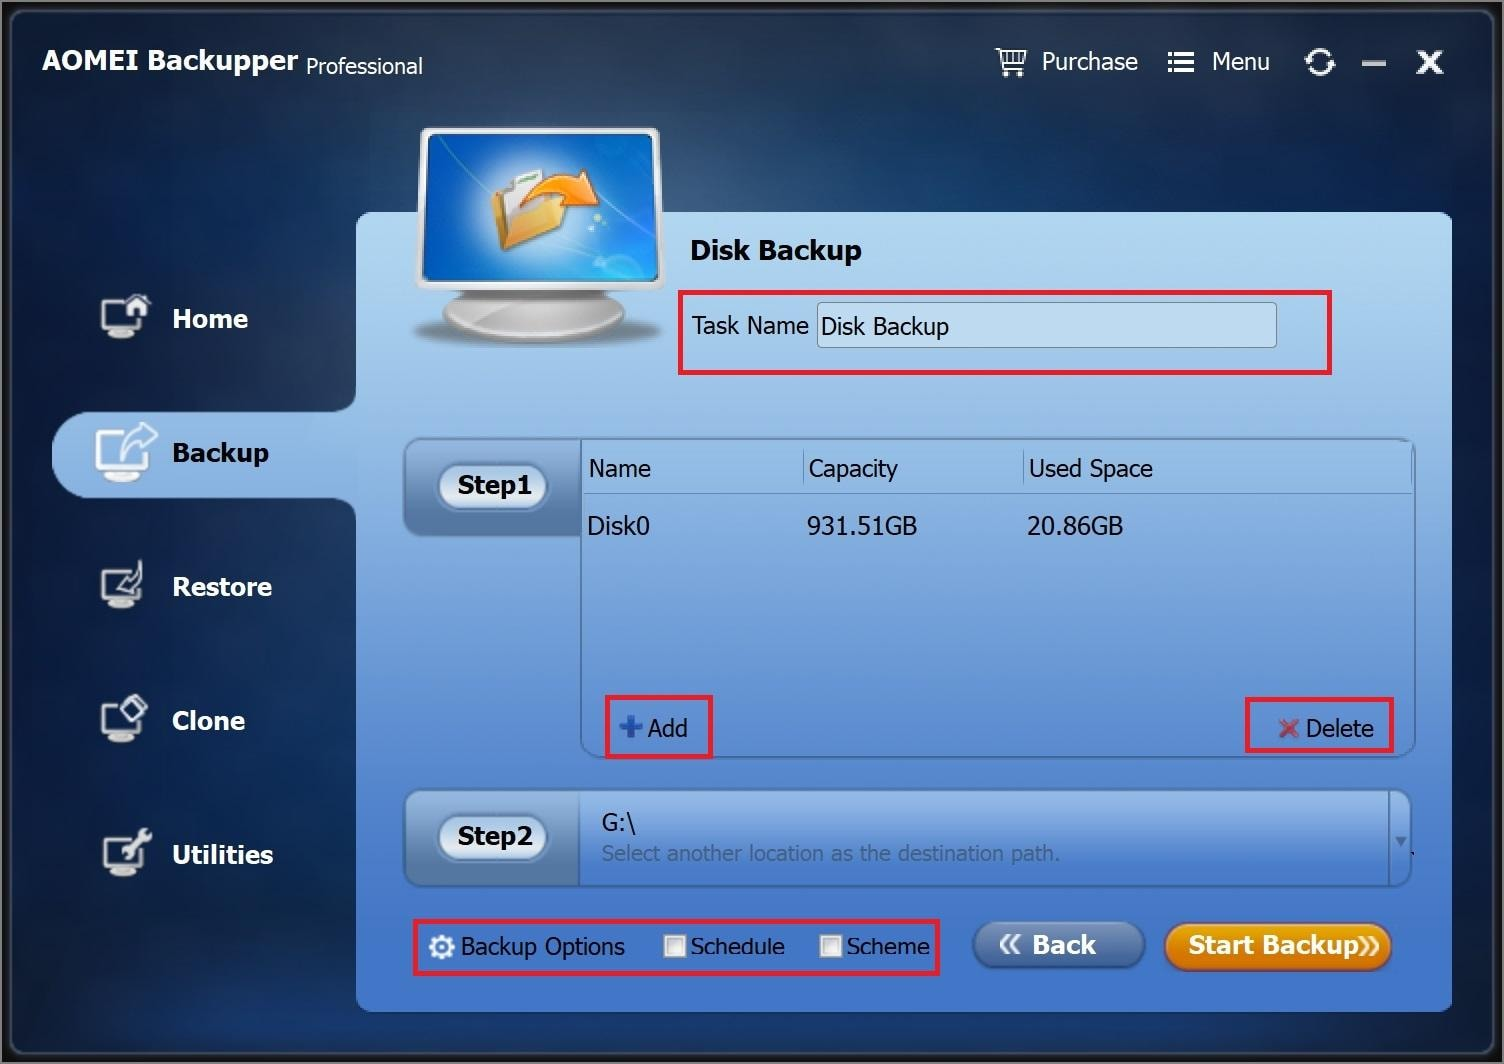 Configure the backup task